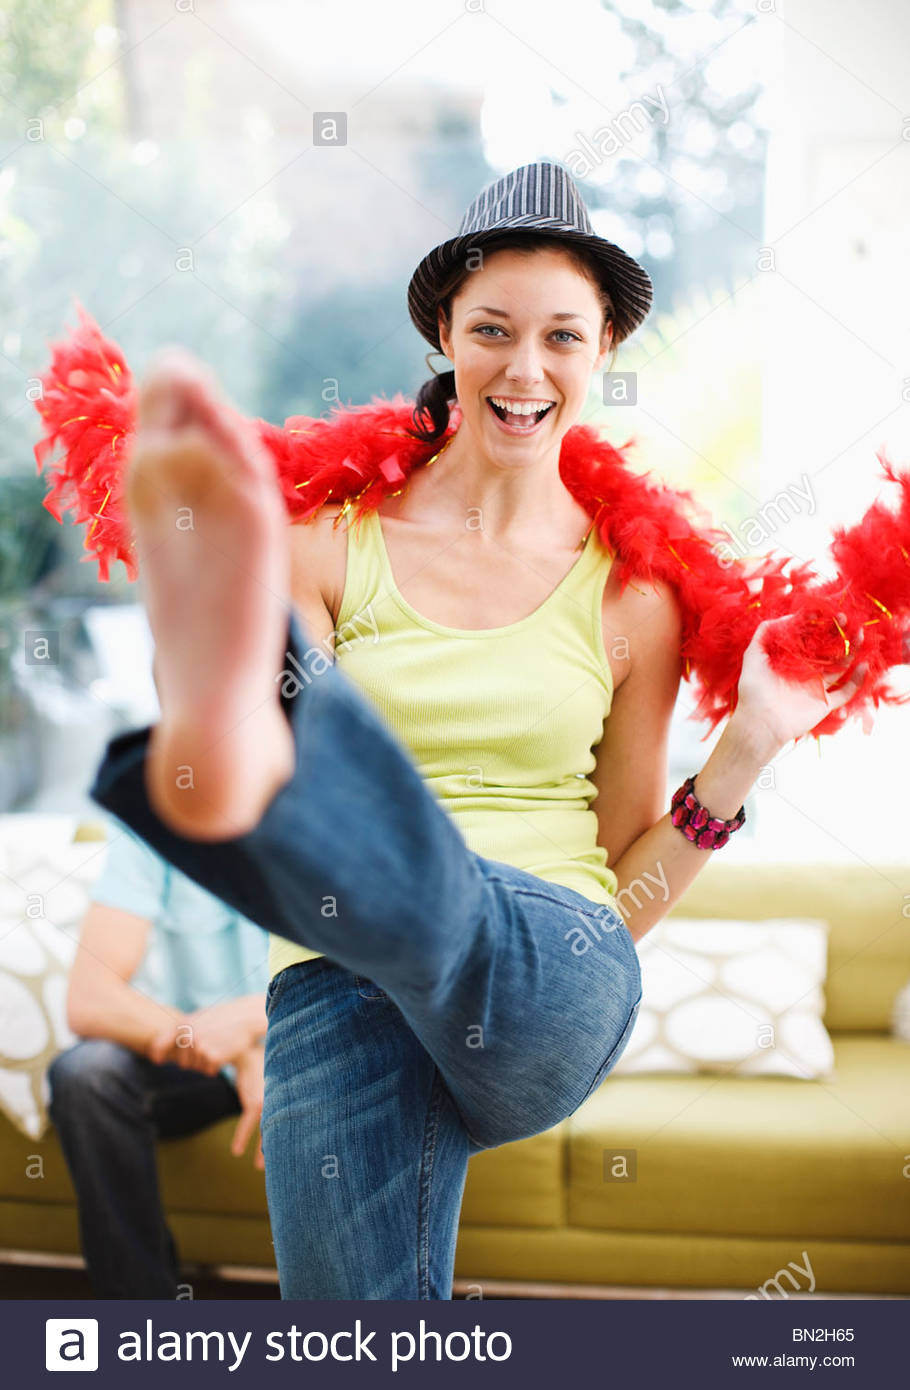 Woman dancing in hat and feather boa Stock Photo